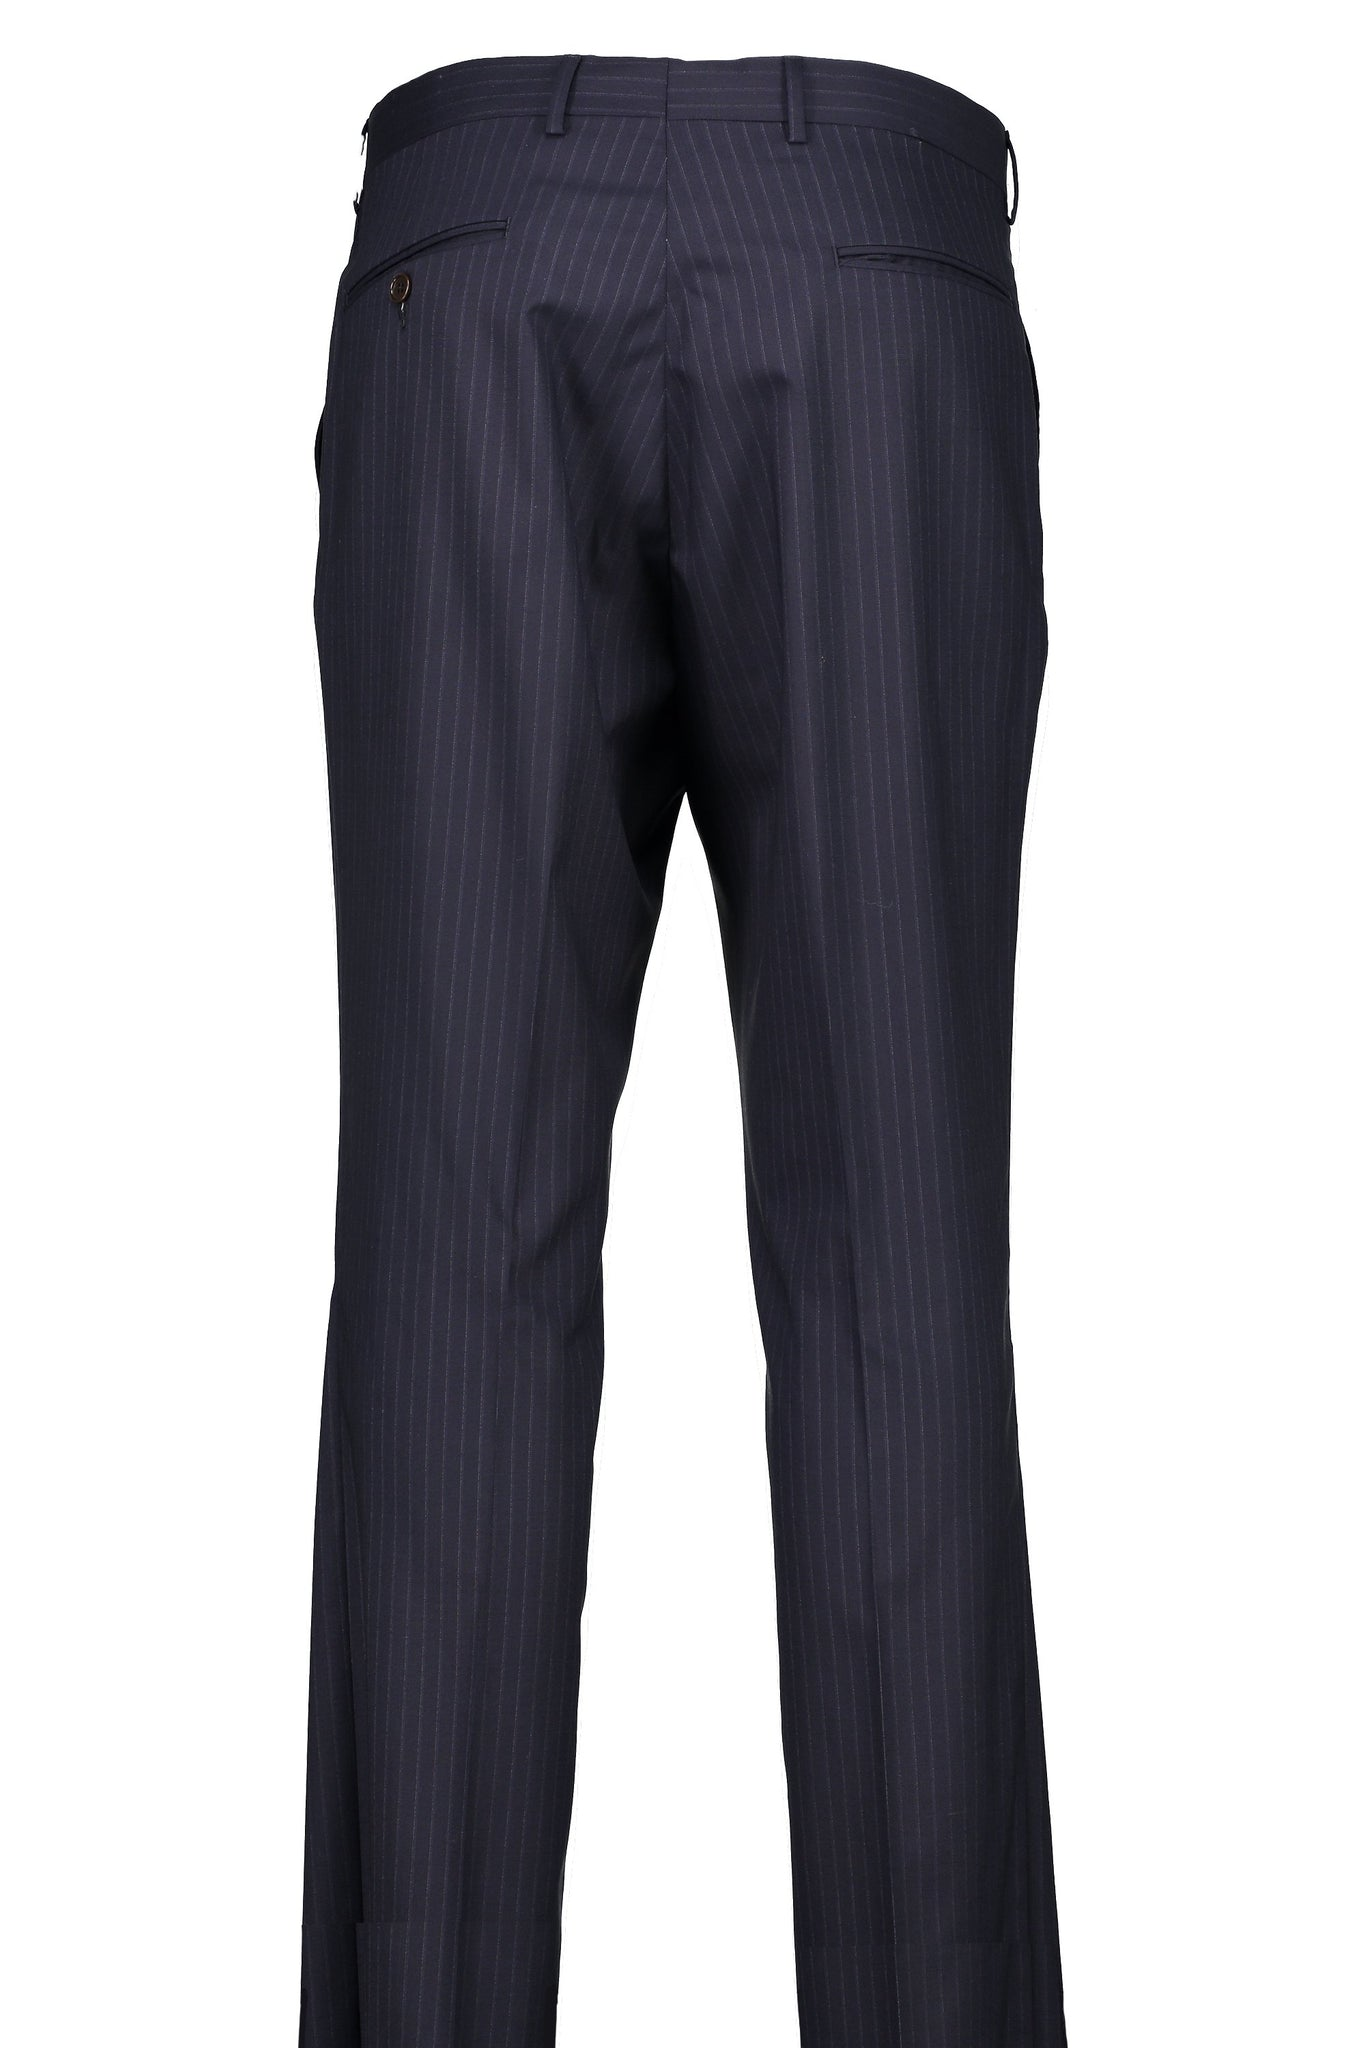 Classic Fit Navy Pinstripe H-Tech Wool Suit Separates Flat Front Pant -  Hardwick.com